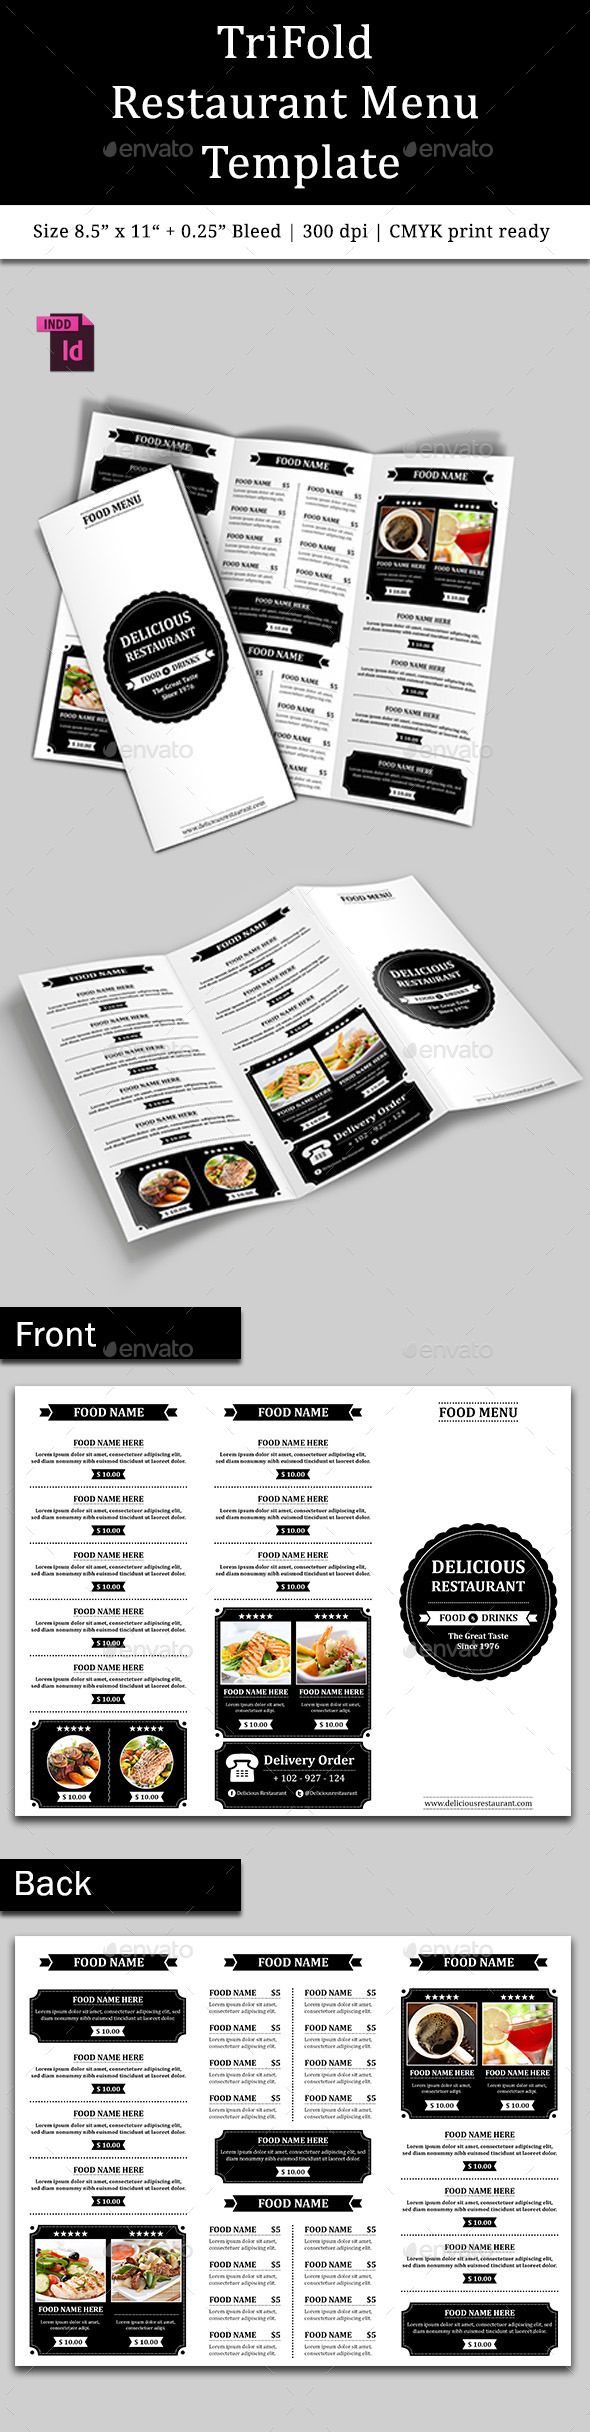 Best Diner Project Images On   Menu Cards Menu